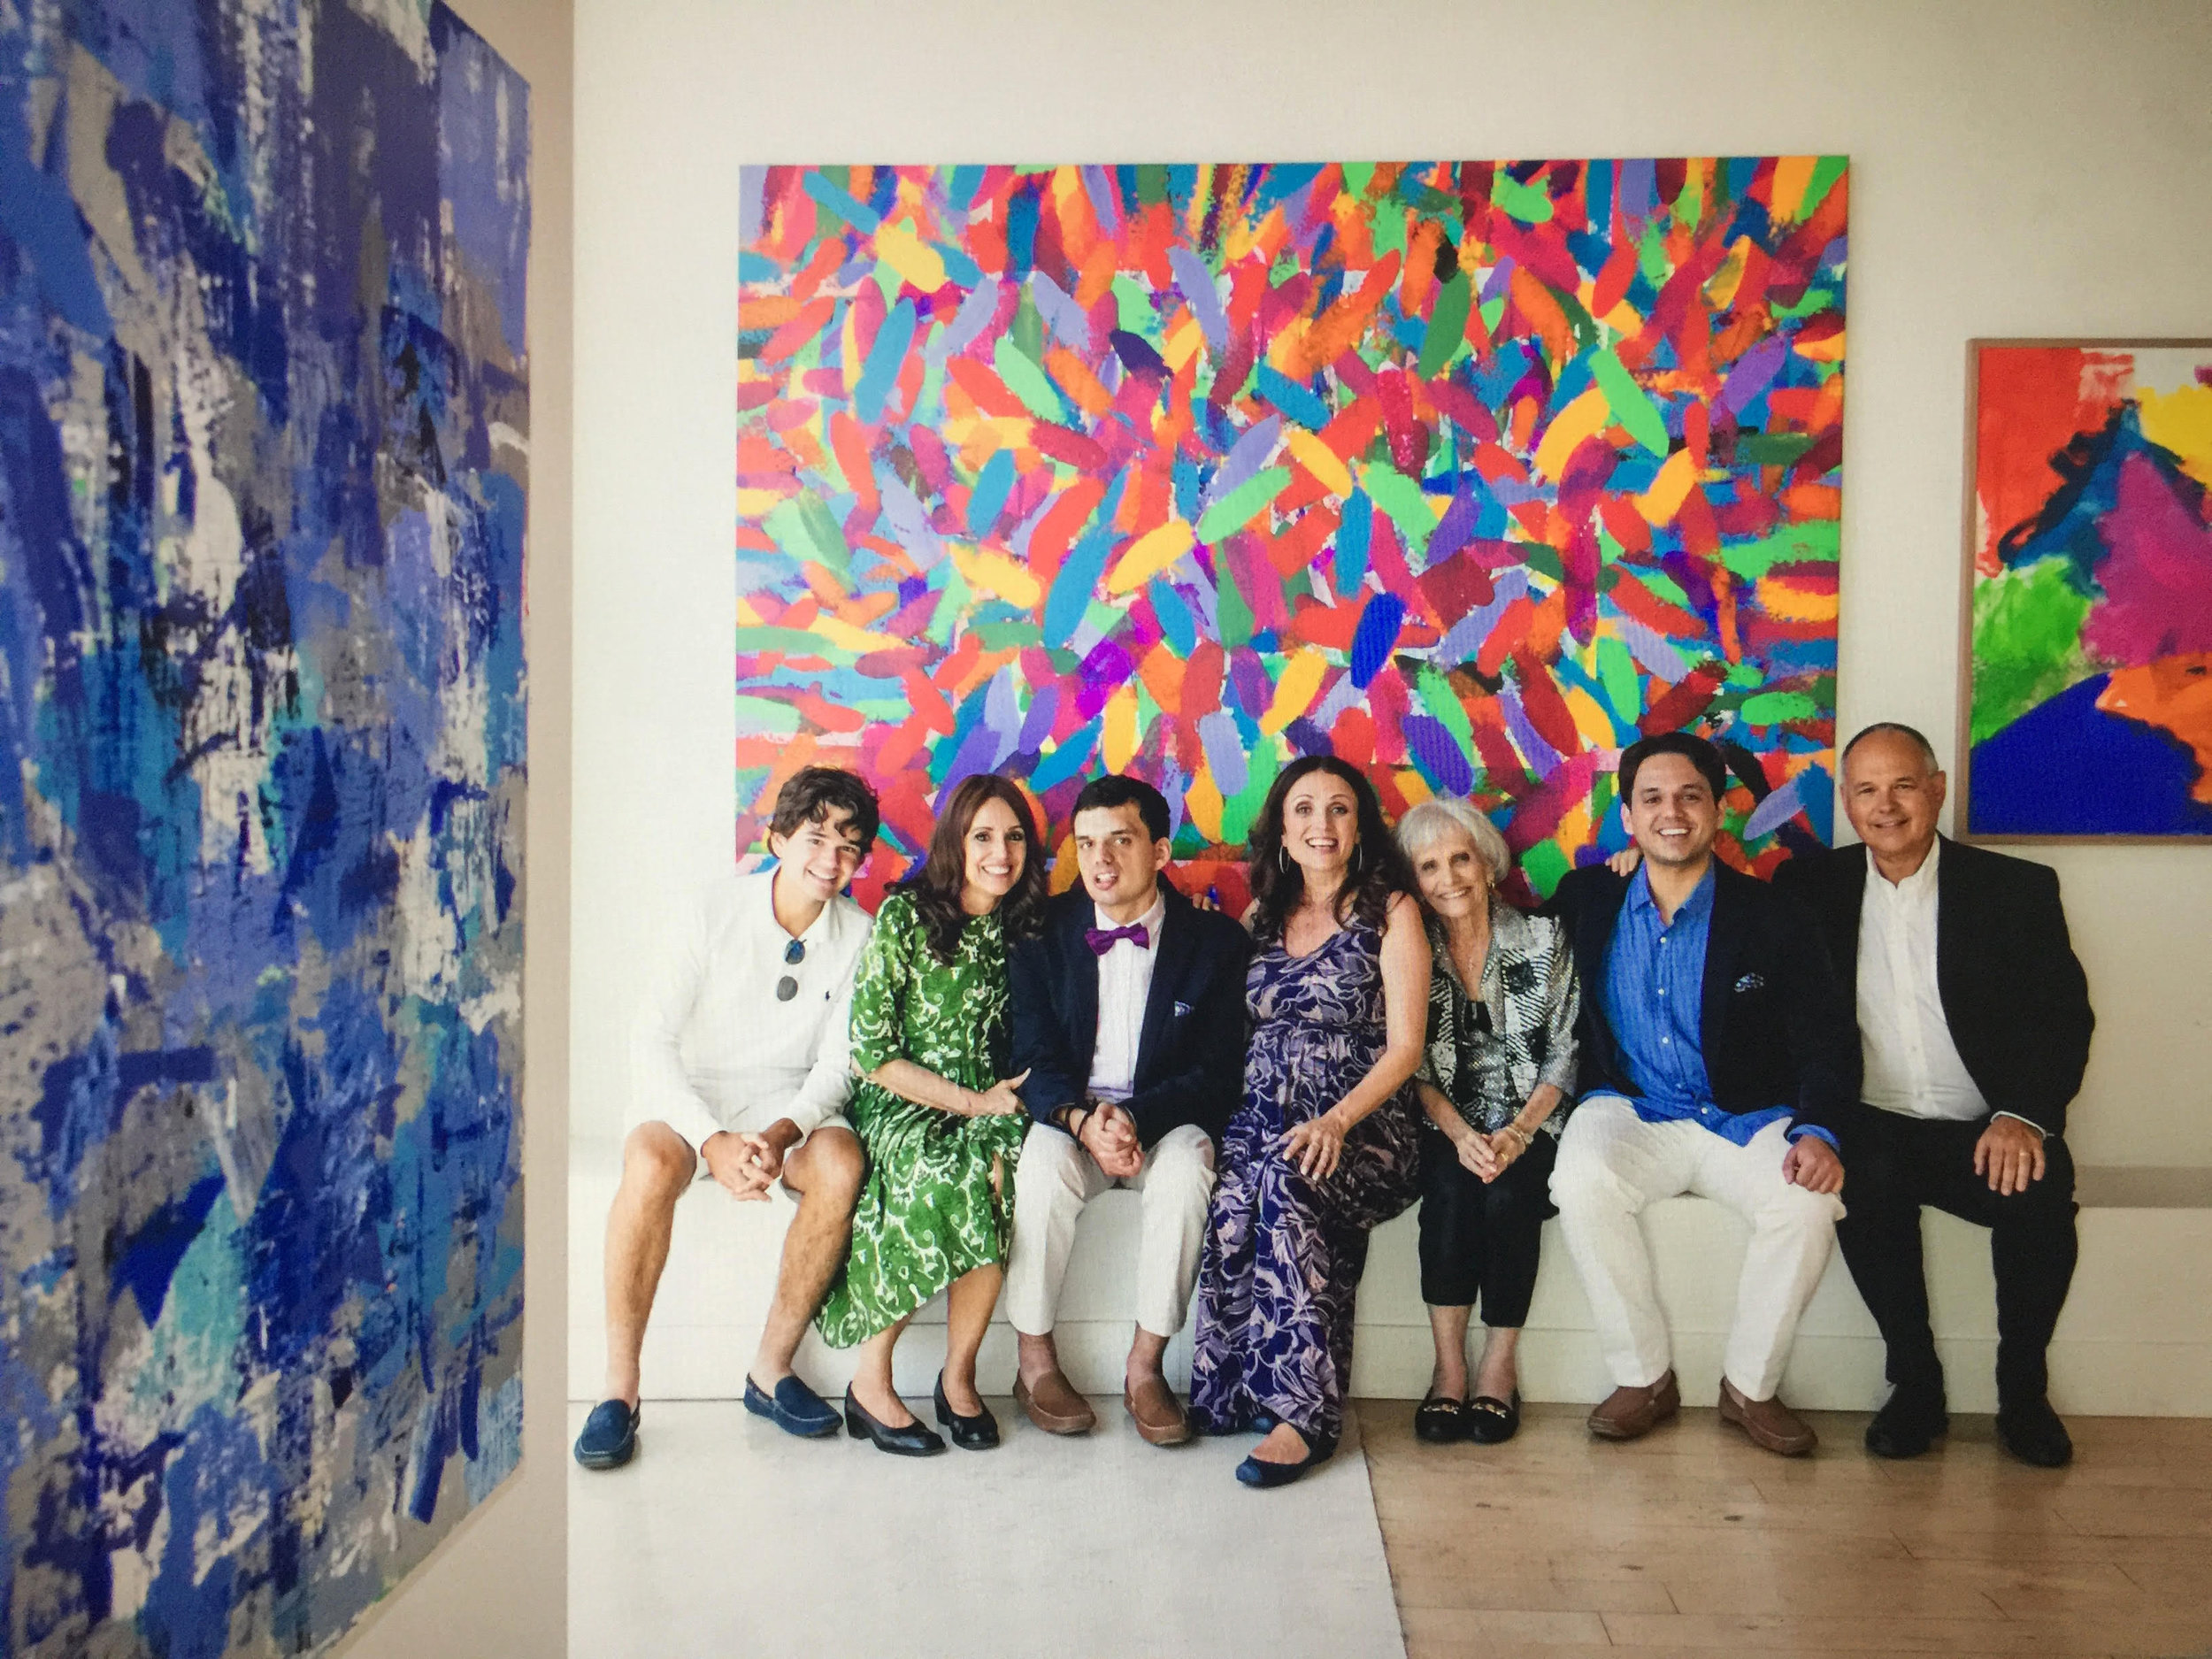 The Kontaxis Family, from left to right Christian Kontaxis,Krisann Kontaxis, Nicholas Kontaxis, Jenni Nassos Pulos, Alice Pulos, Euthym Kontaxis MD